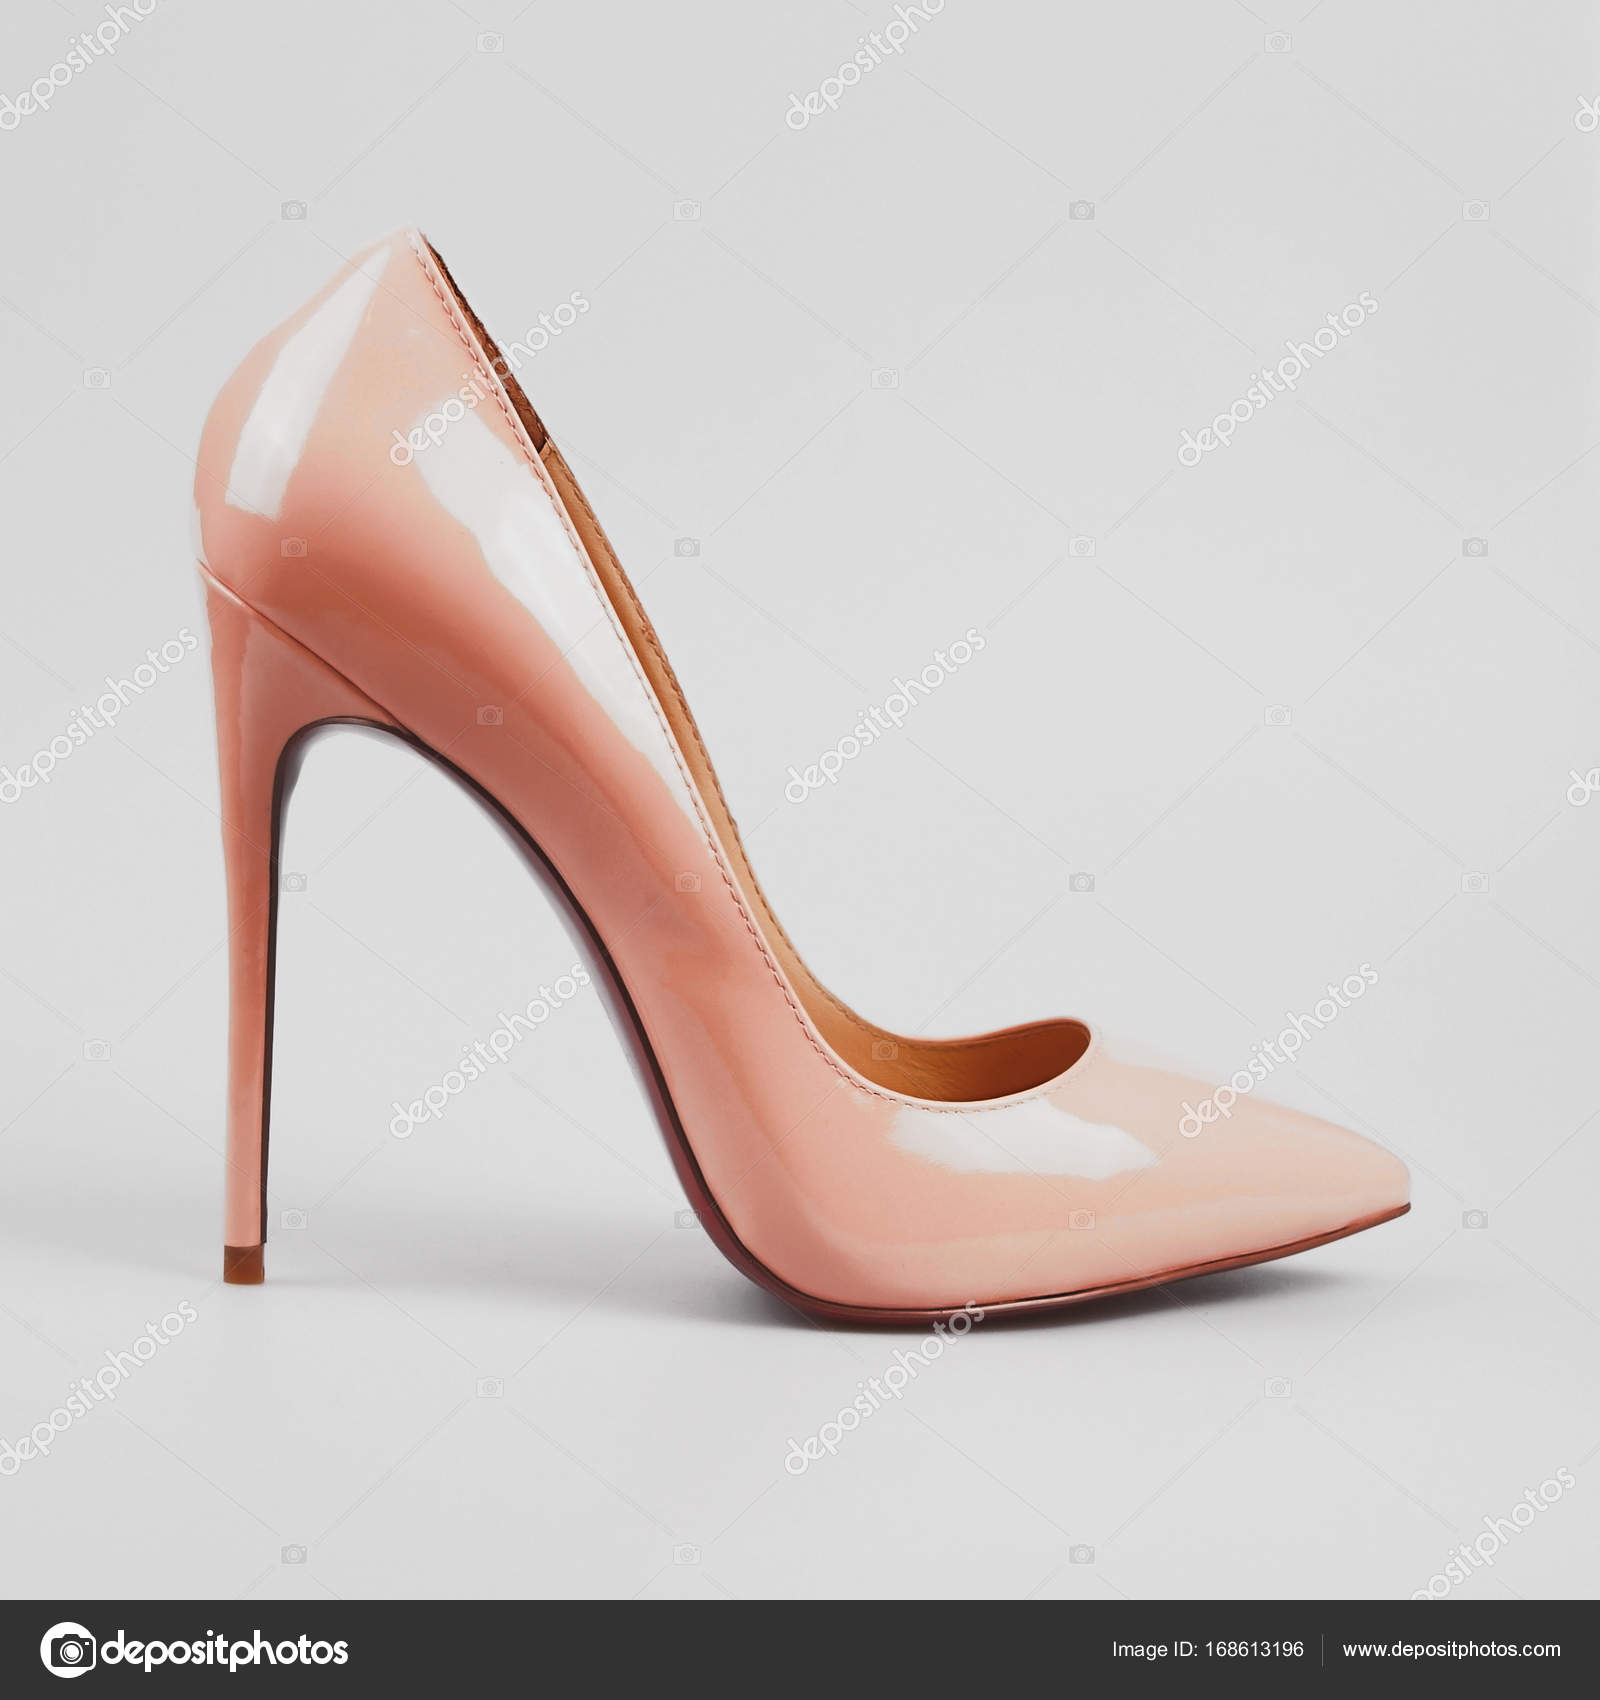 Footwear stylish for girls exclusive photo